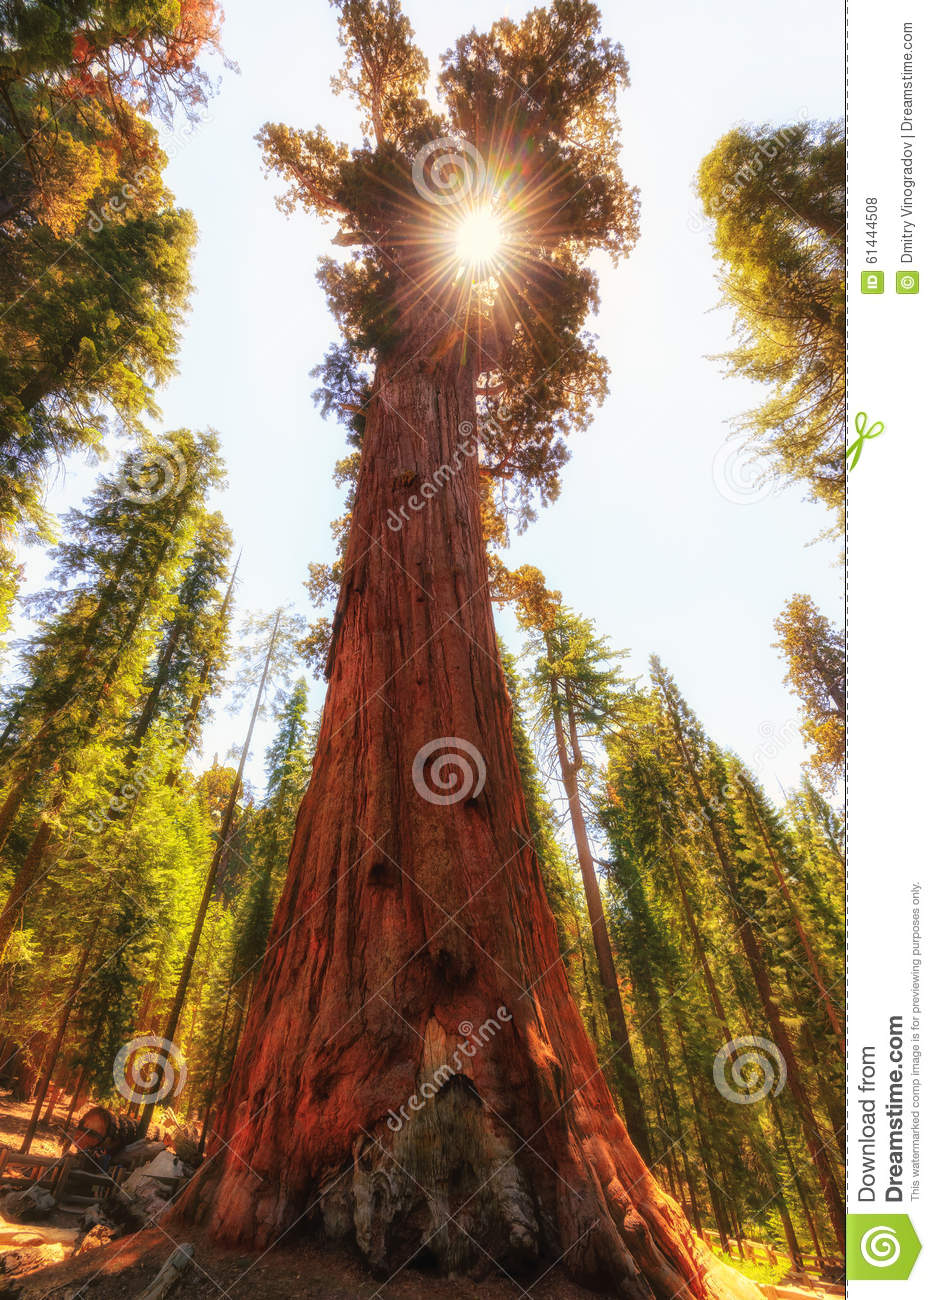 Giant Sequoia and sunshine with soft golden light.